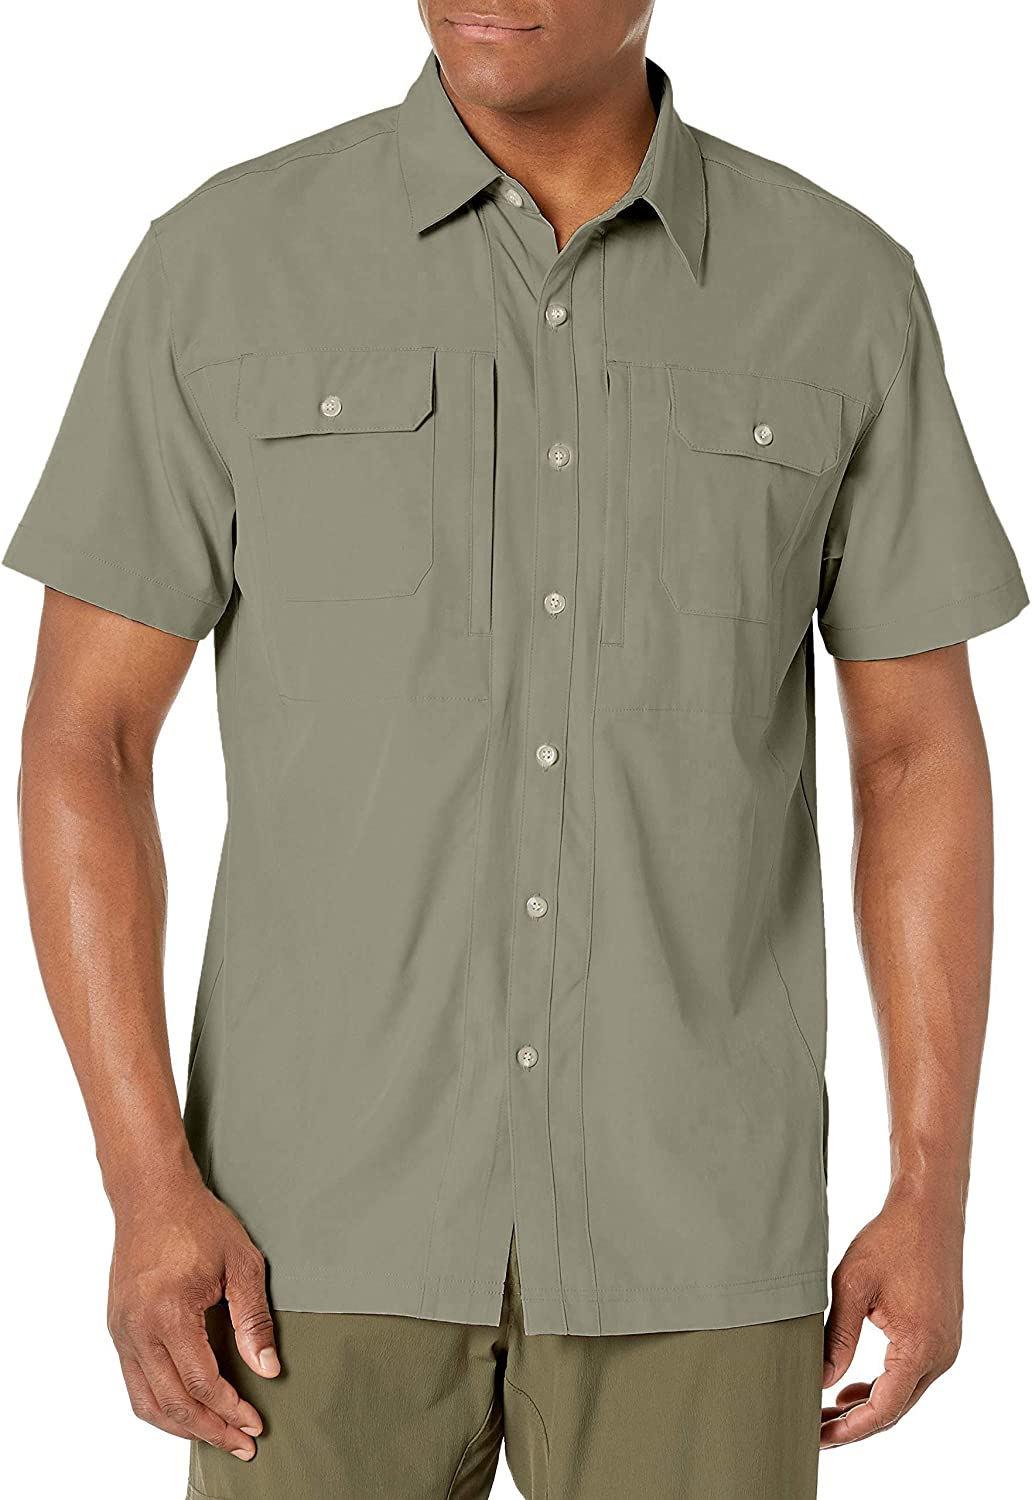 Little Donkey Andy Men's Lightweight Short Sleeve Shirt Quick Dry Stretch Shirt for Hiking Travel, UPF50 : Clothing